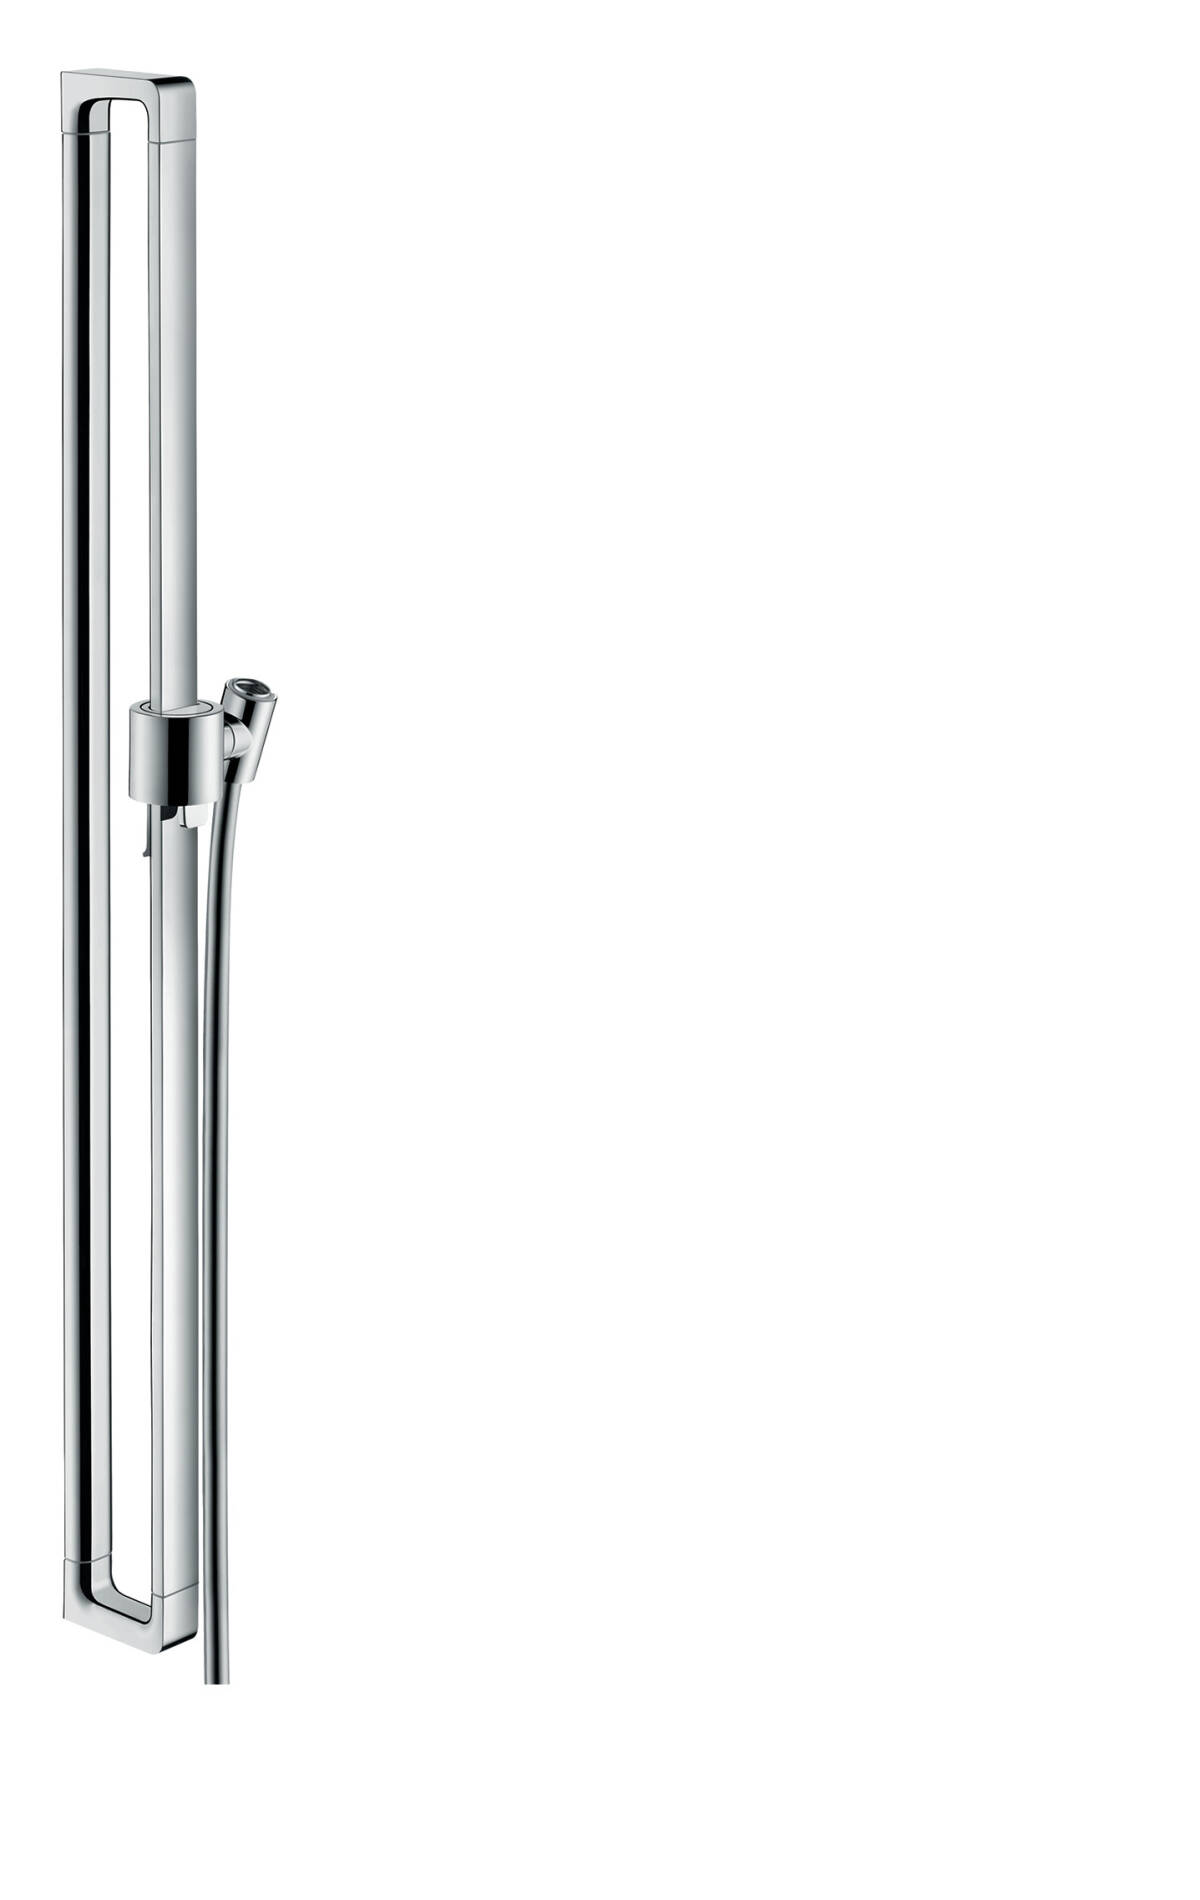 Shower bar 0.90 m, Brushed Black Chrome, 36736340